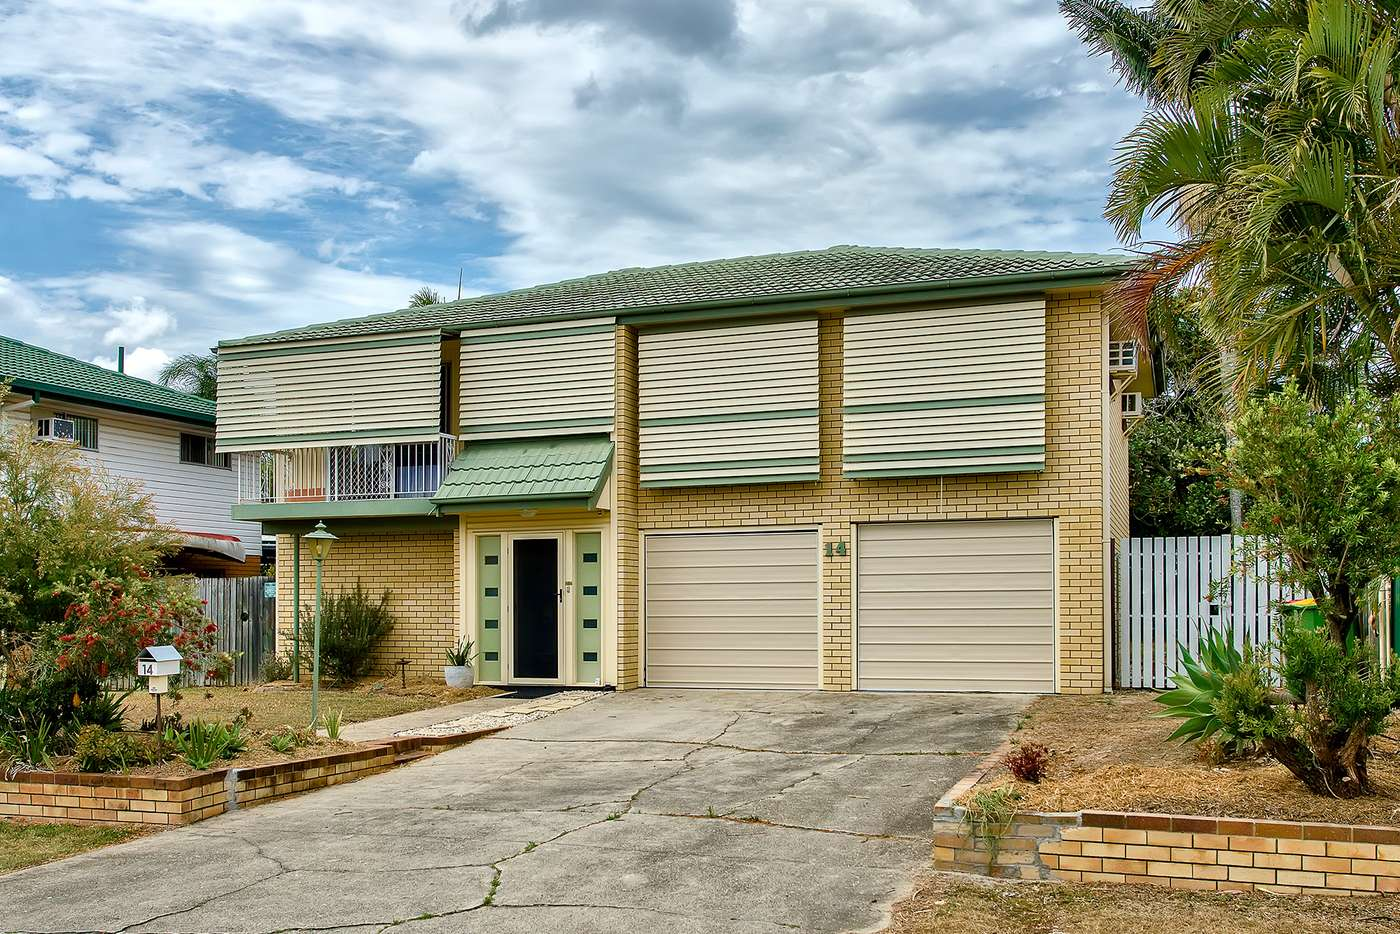 Main view of Homely house listing, 14 Ulmarra Crescent, Strathpine QLD 4500